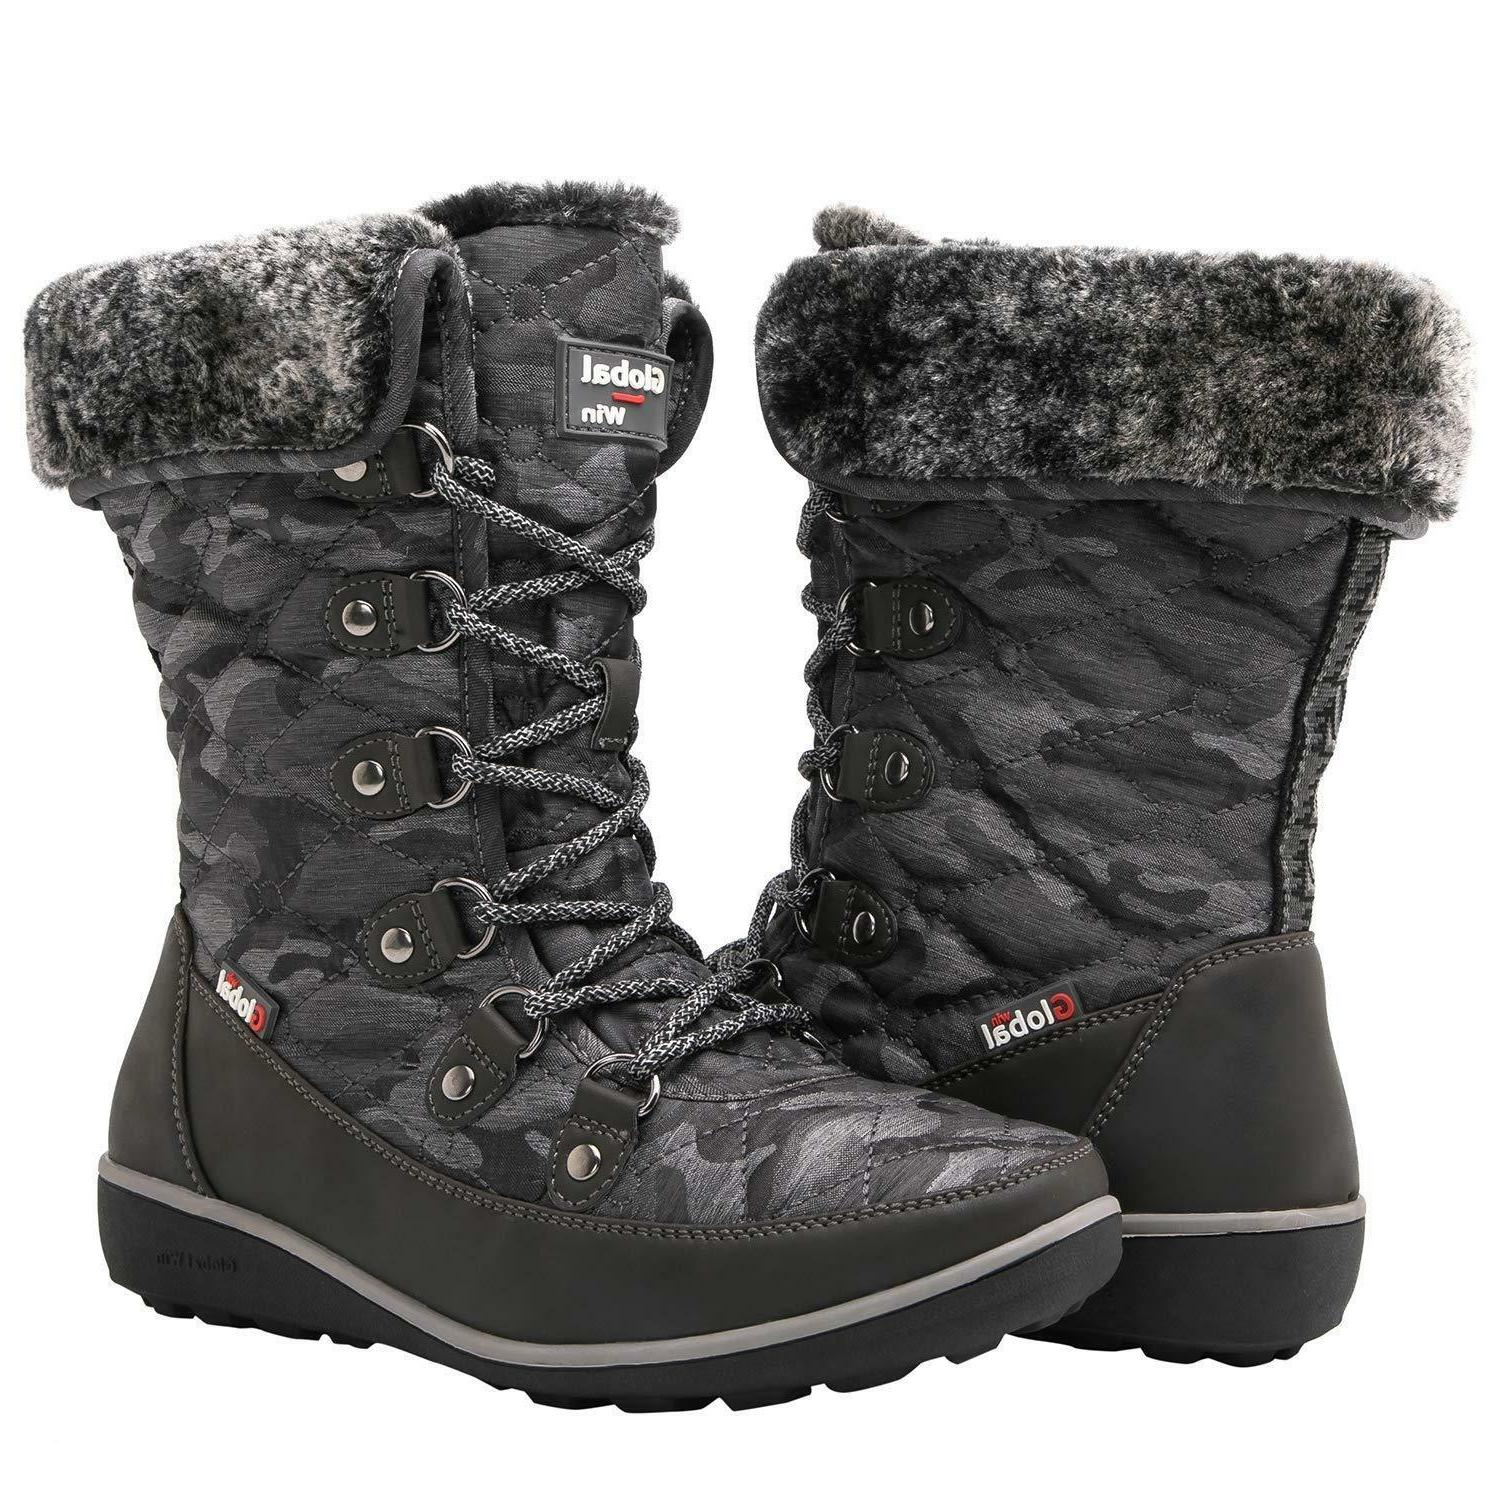 Globalwin Women's Snow